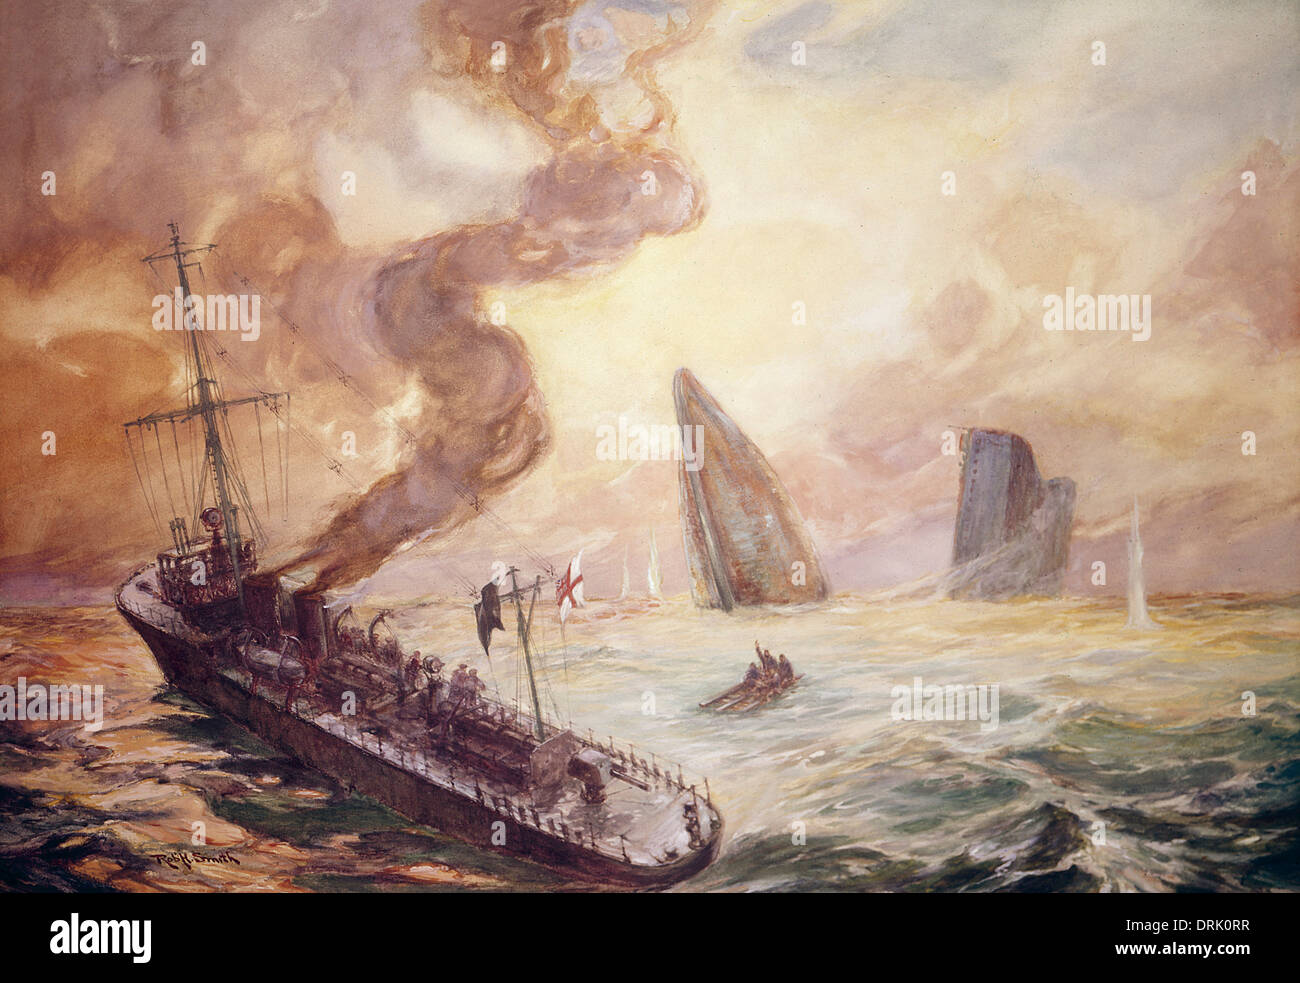 Ships sinking and in trouble, WW1 - Stock Image